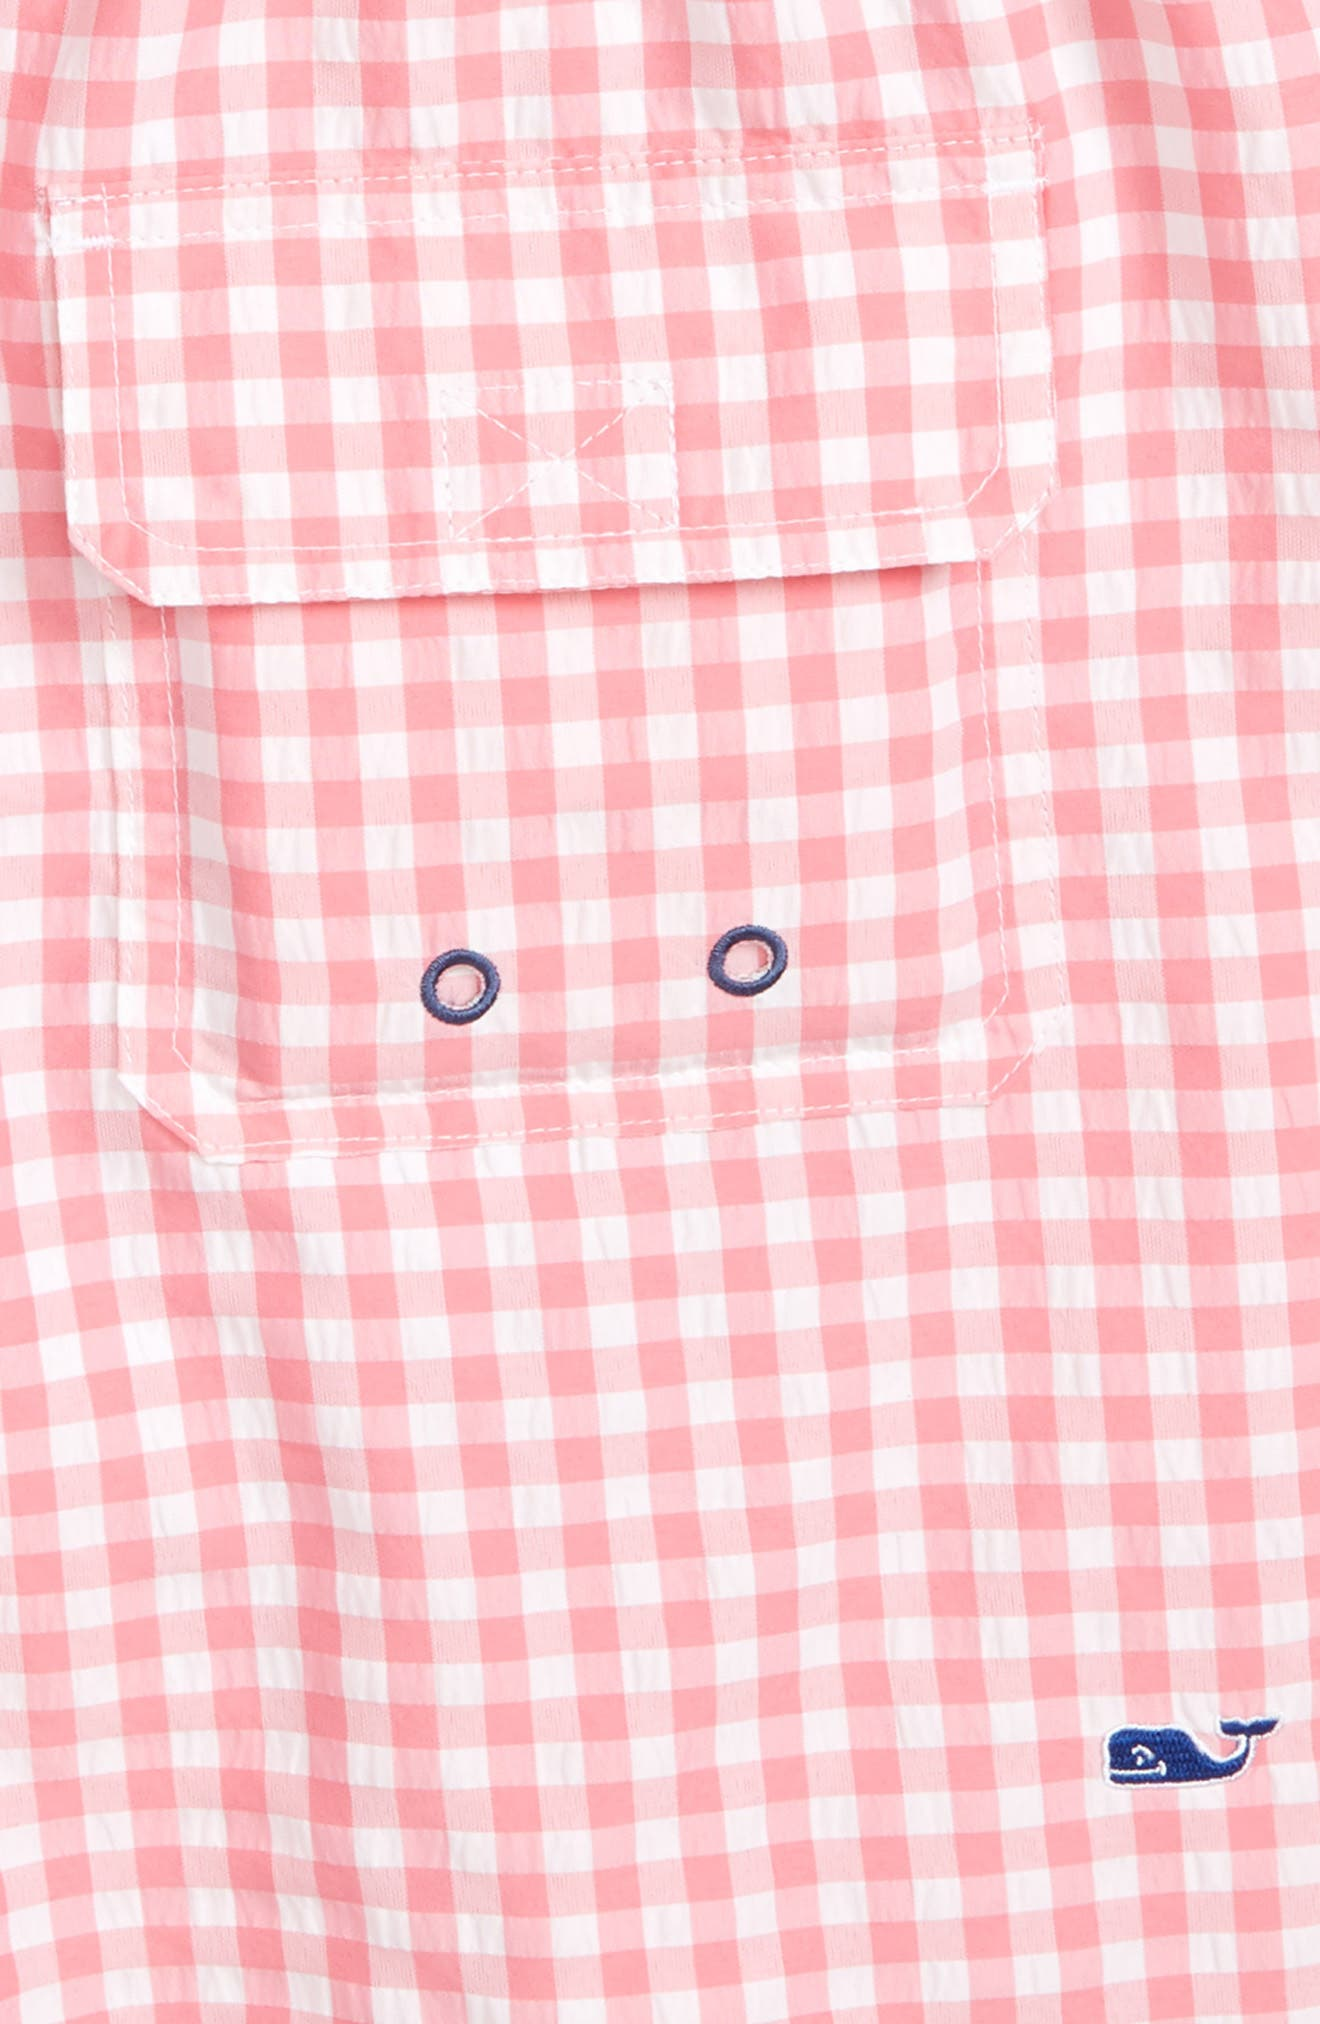 Embroidered Micro Gingham Check Swim Trunks,                             Alternate thumbnail 3, color,                             400